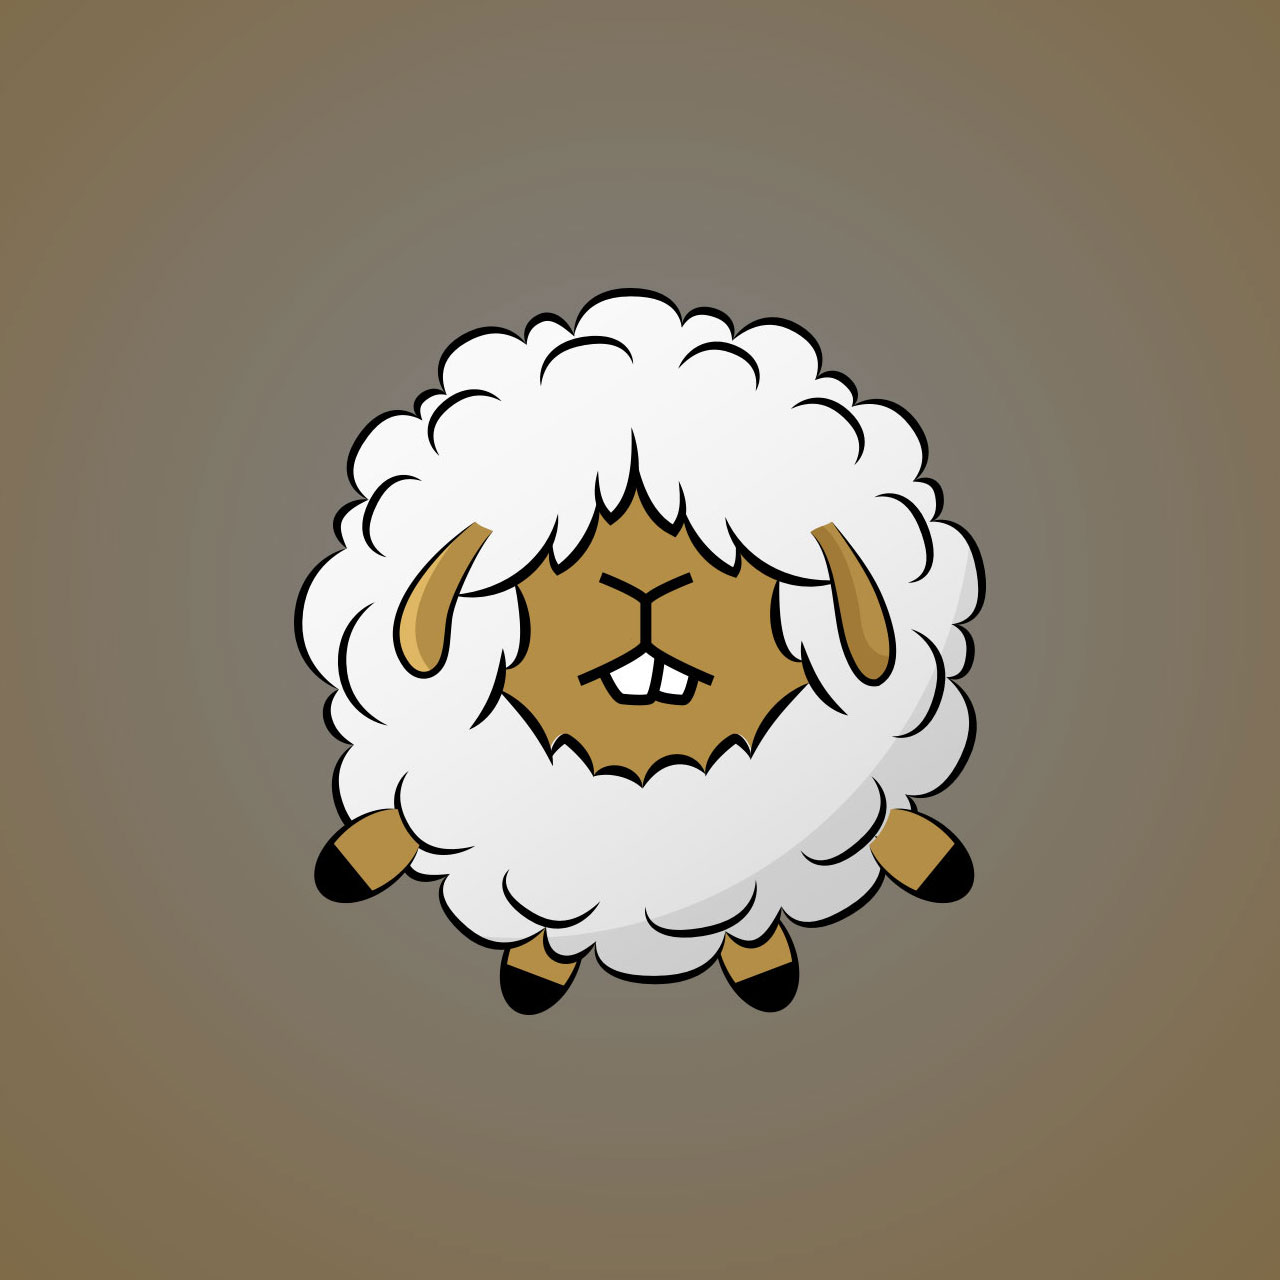 Sheep Minimal Vector Character Design For A Casual Mobile Game